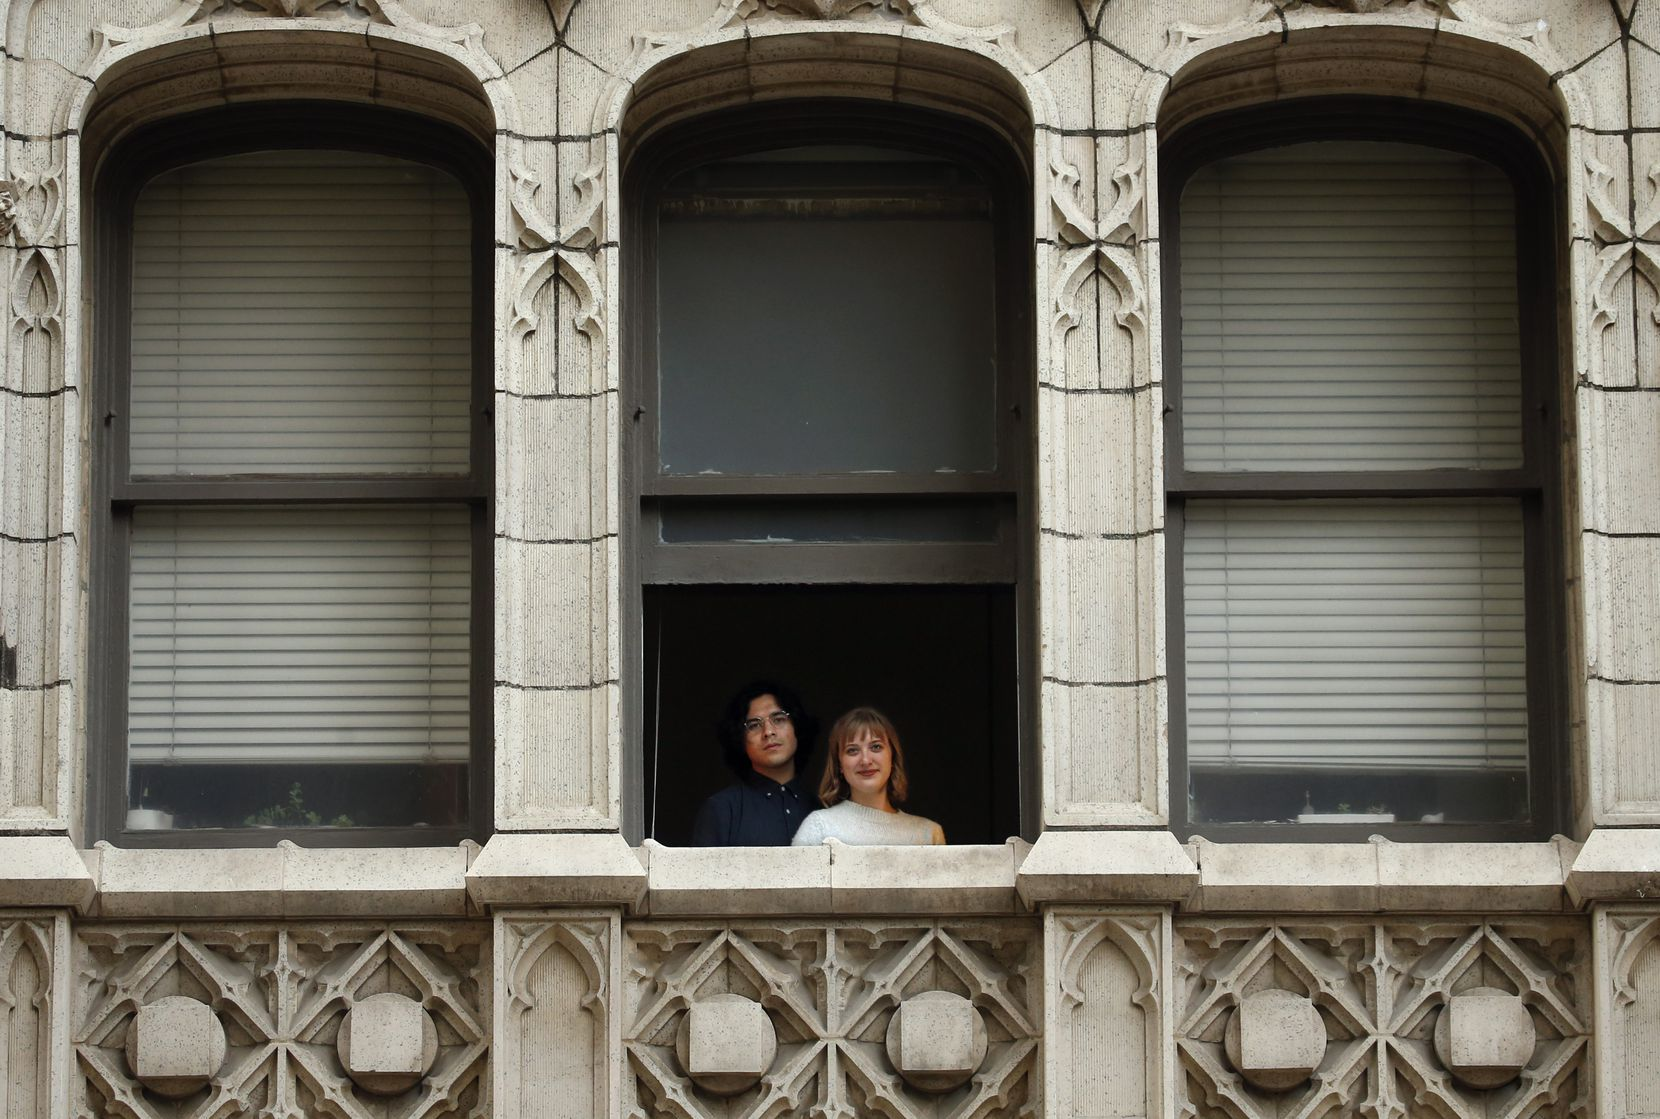 As the pandemic took hold in North Texas in March, Benjy and Marie Joung felt the need to take as many precautions as possible, only leaving their downtown Dallas apartment for absolutely necessary reasons.